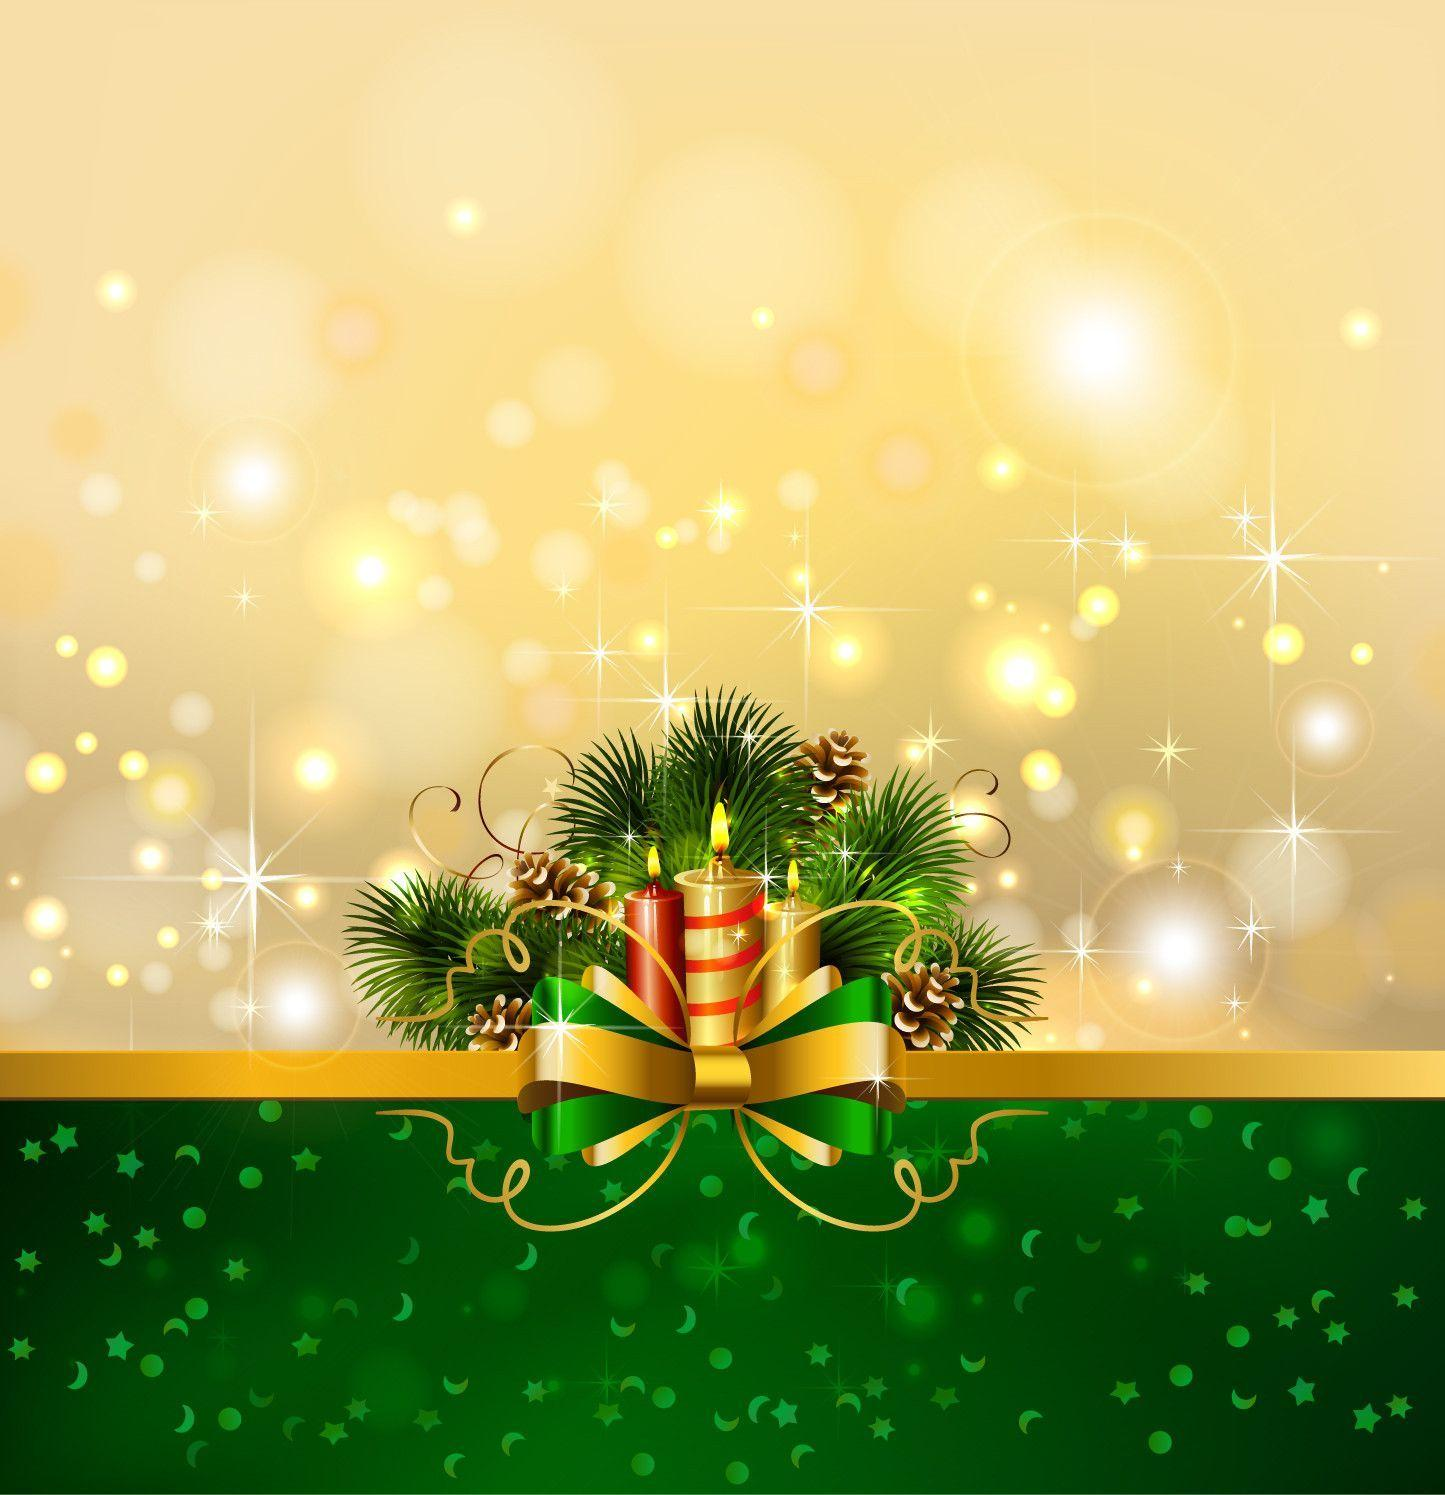 christmas backgrounds image free - wallpaper cave